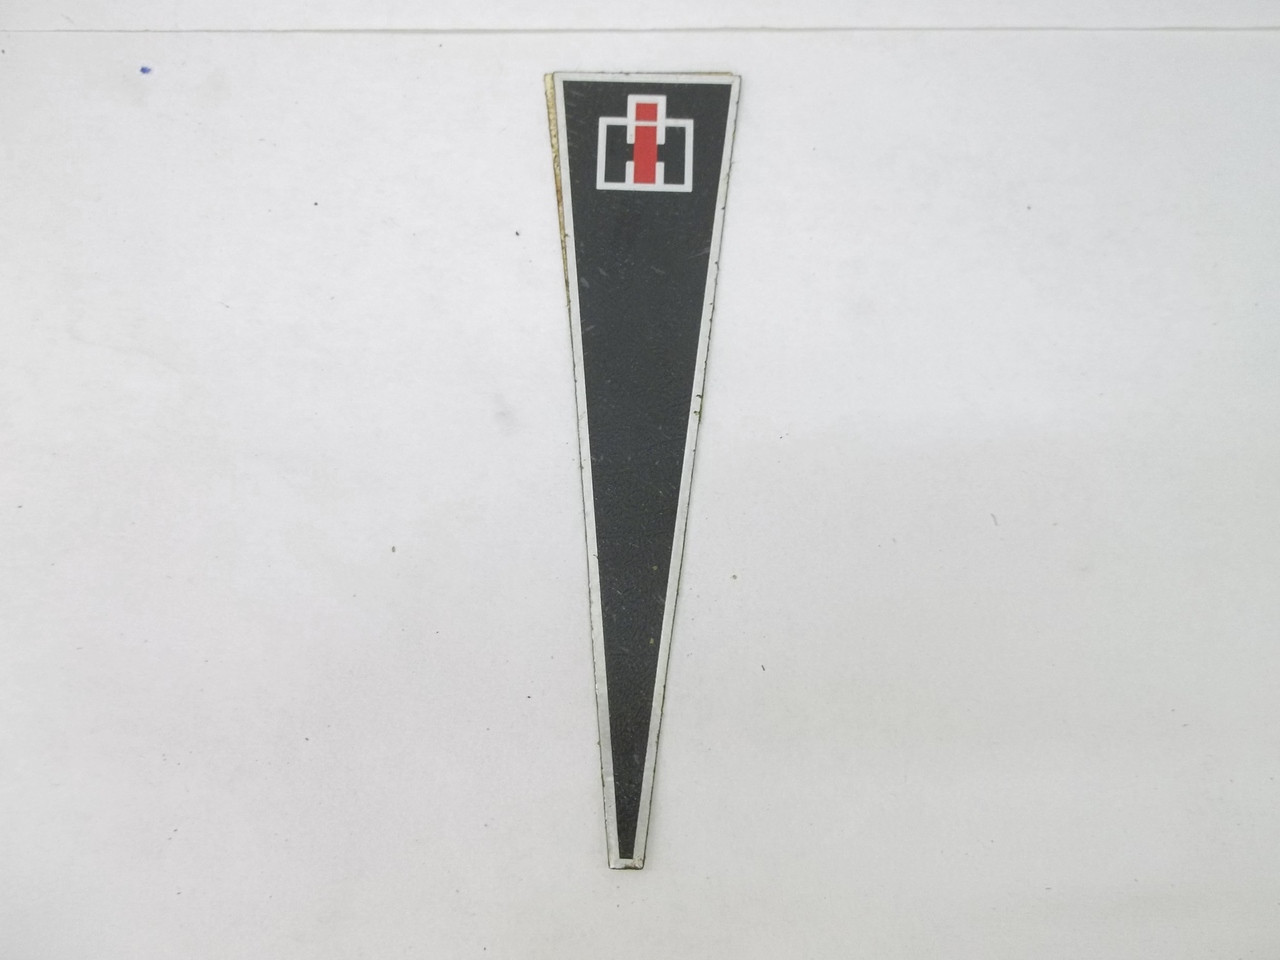 Cub Cadet IH Steering Wheel Decal with Foil Finish 108 128 129 149 1450  1650 (1C-1 -